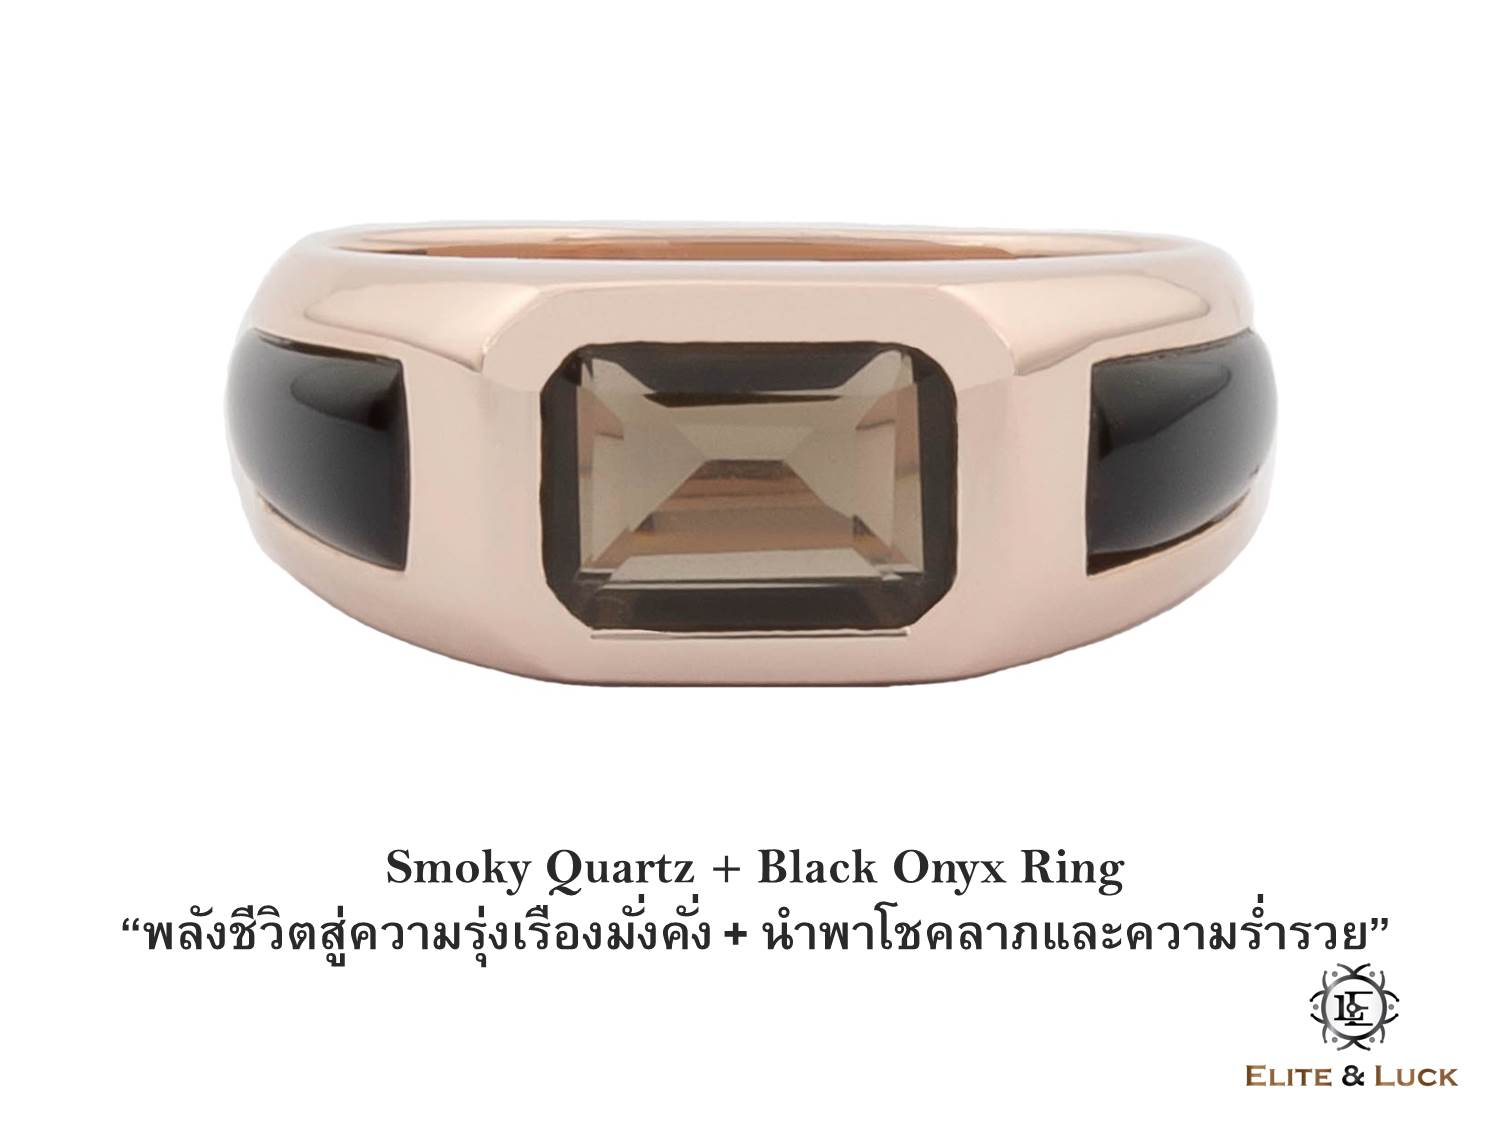 แหวน Smoky Quartz + Black Onyx Sterling Silver สี Rose Gold รุ่น Majestic